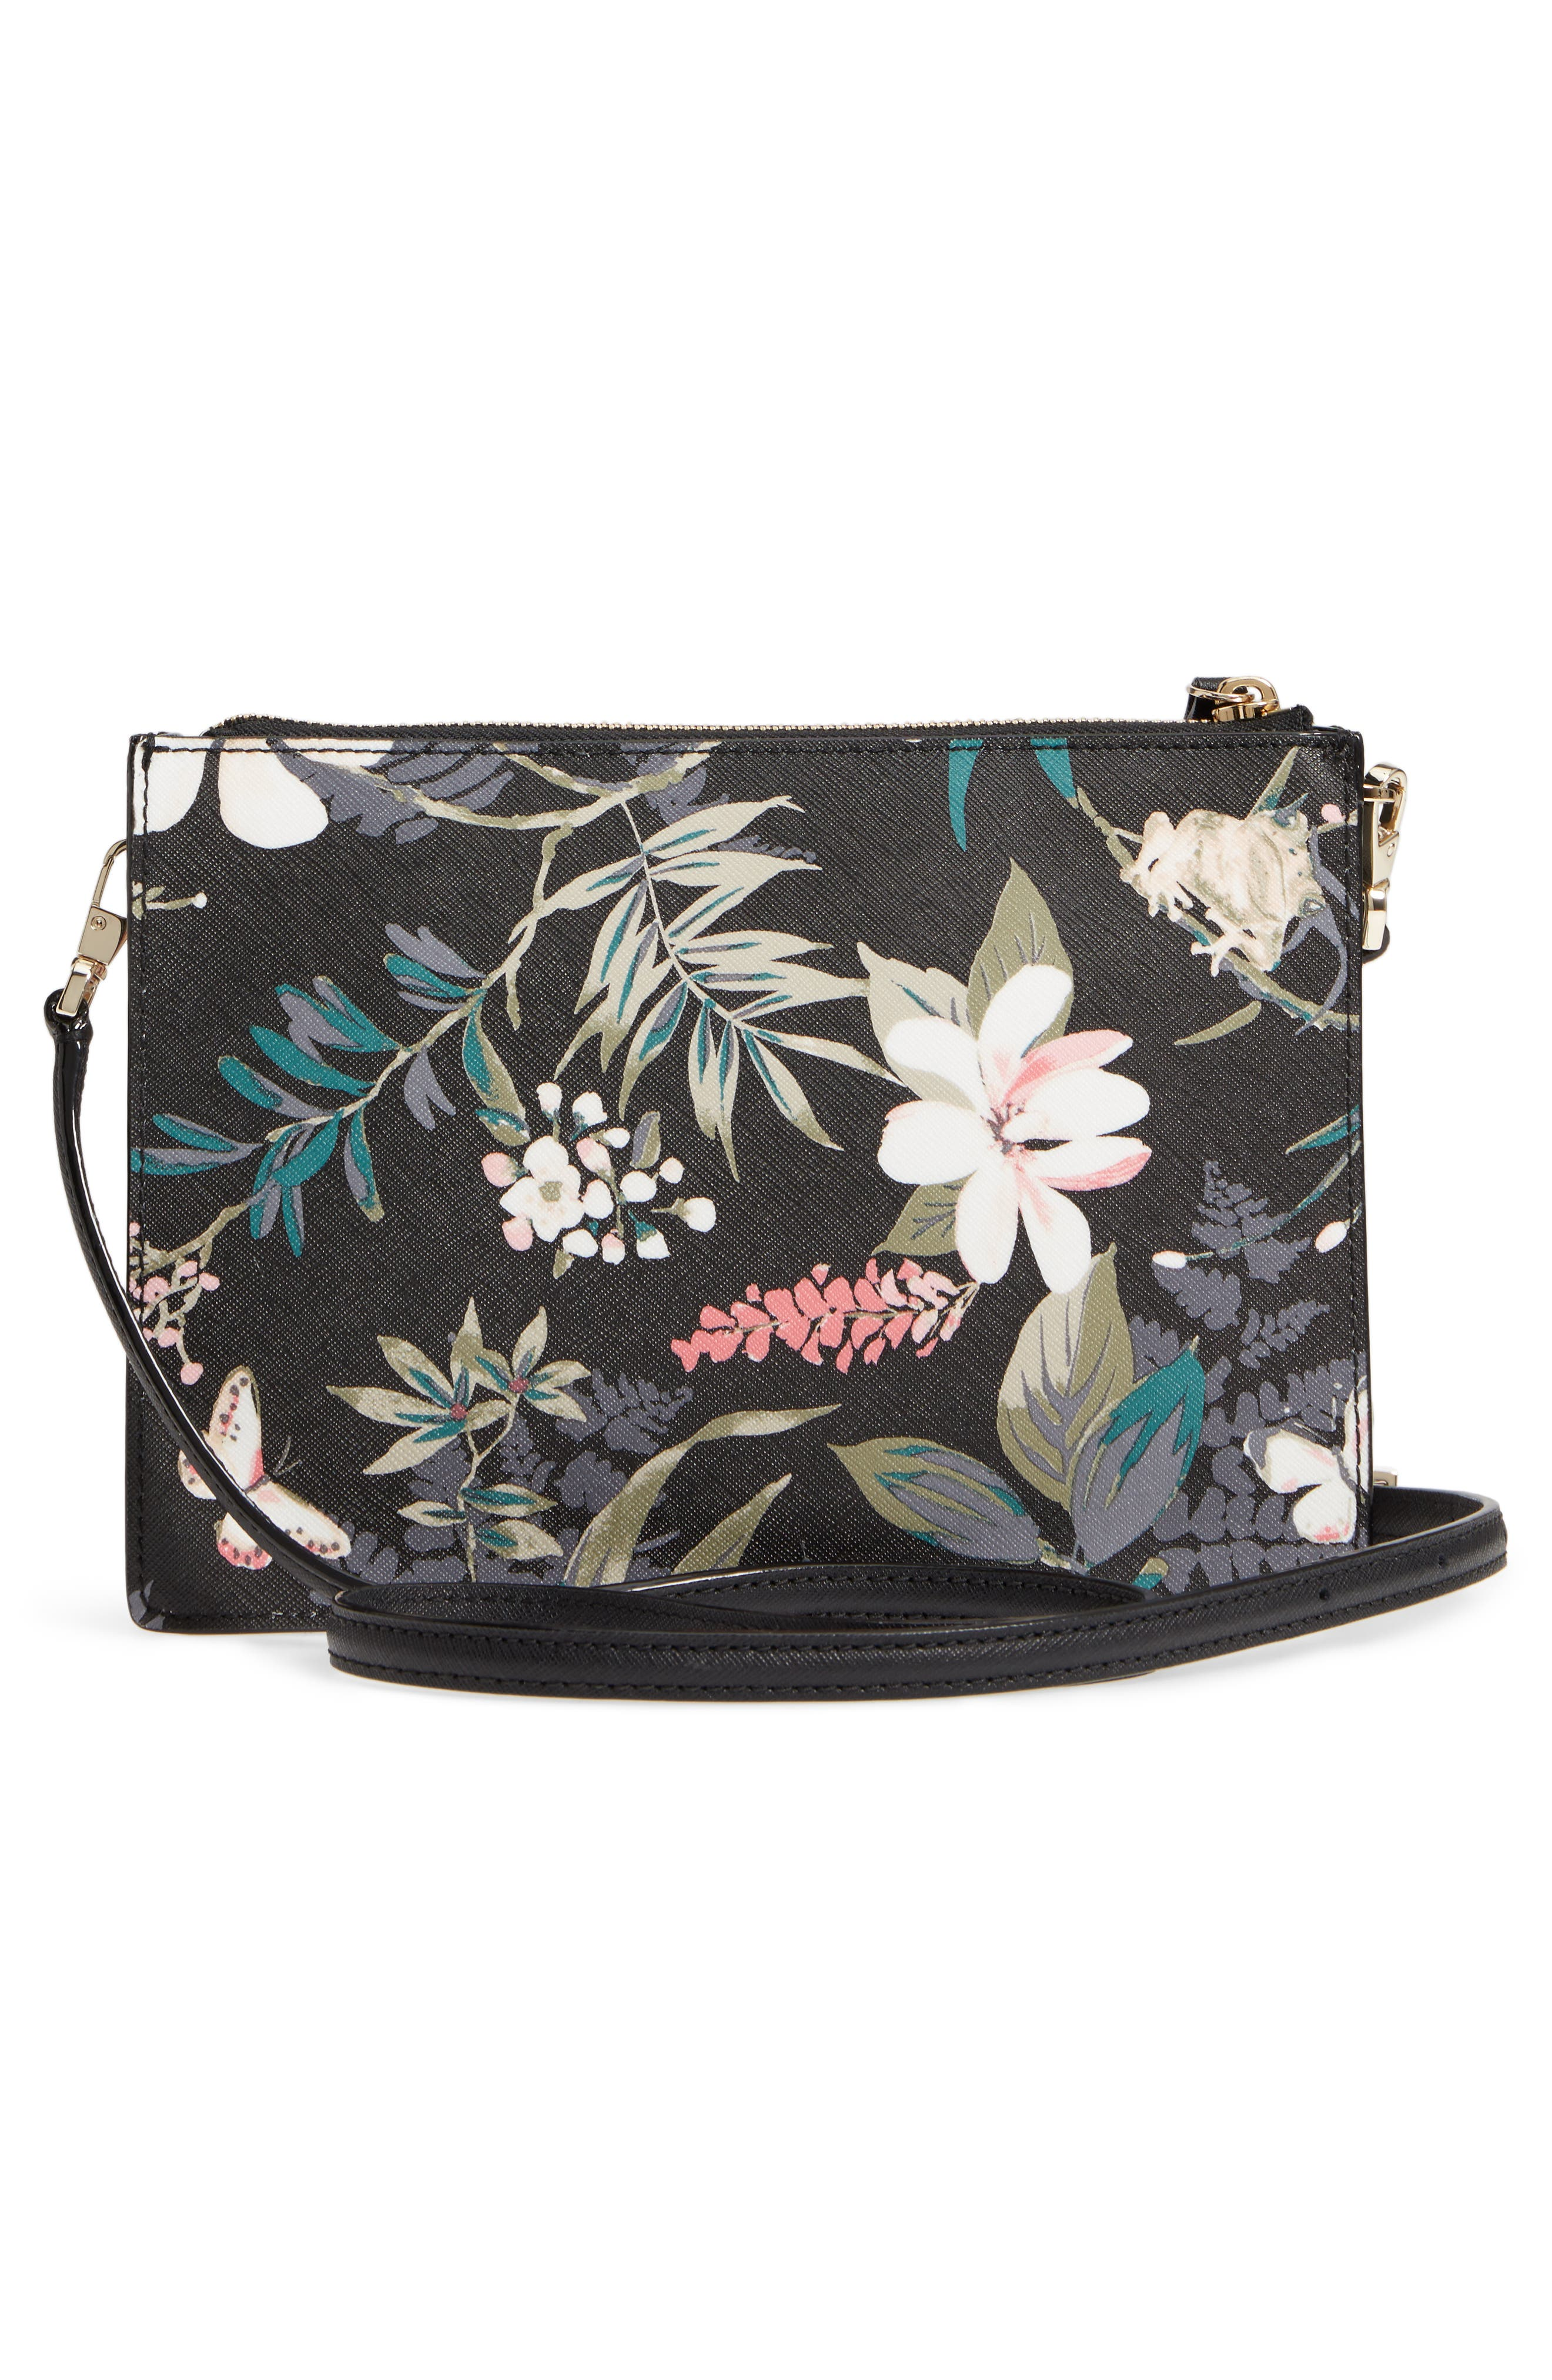 cameron street botanical - clarise faux leather crossbody bag,                             Alternate thumbnail 3, color,                             001